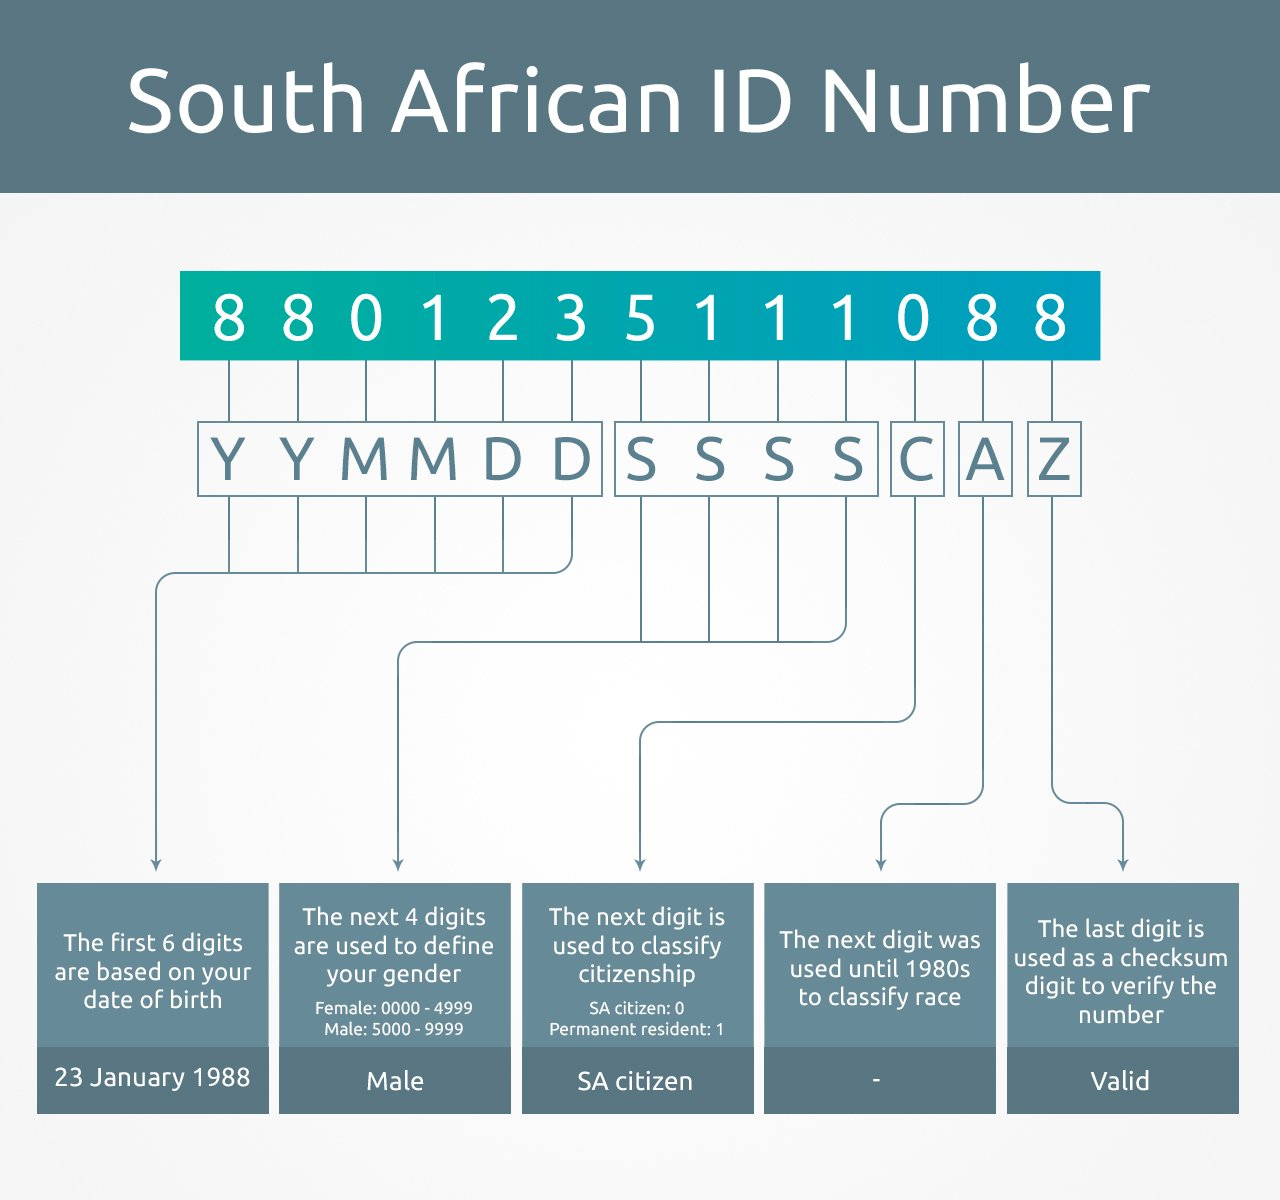 South African ID number